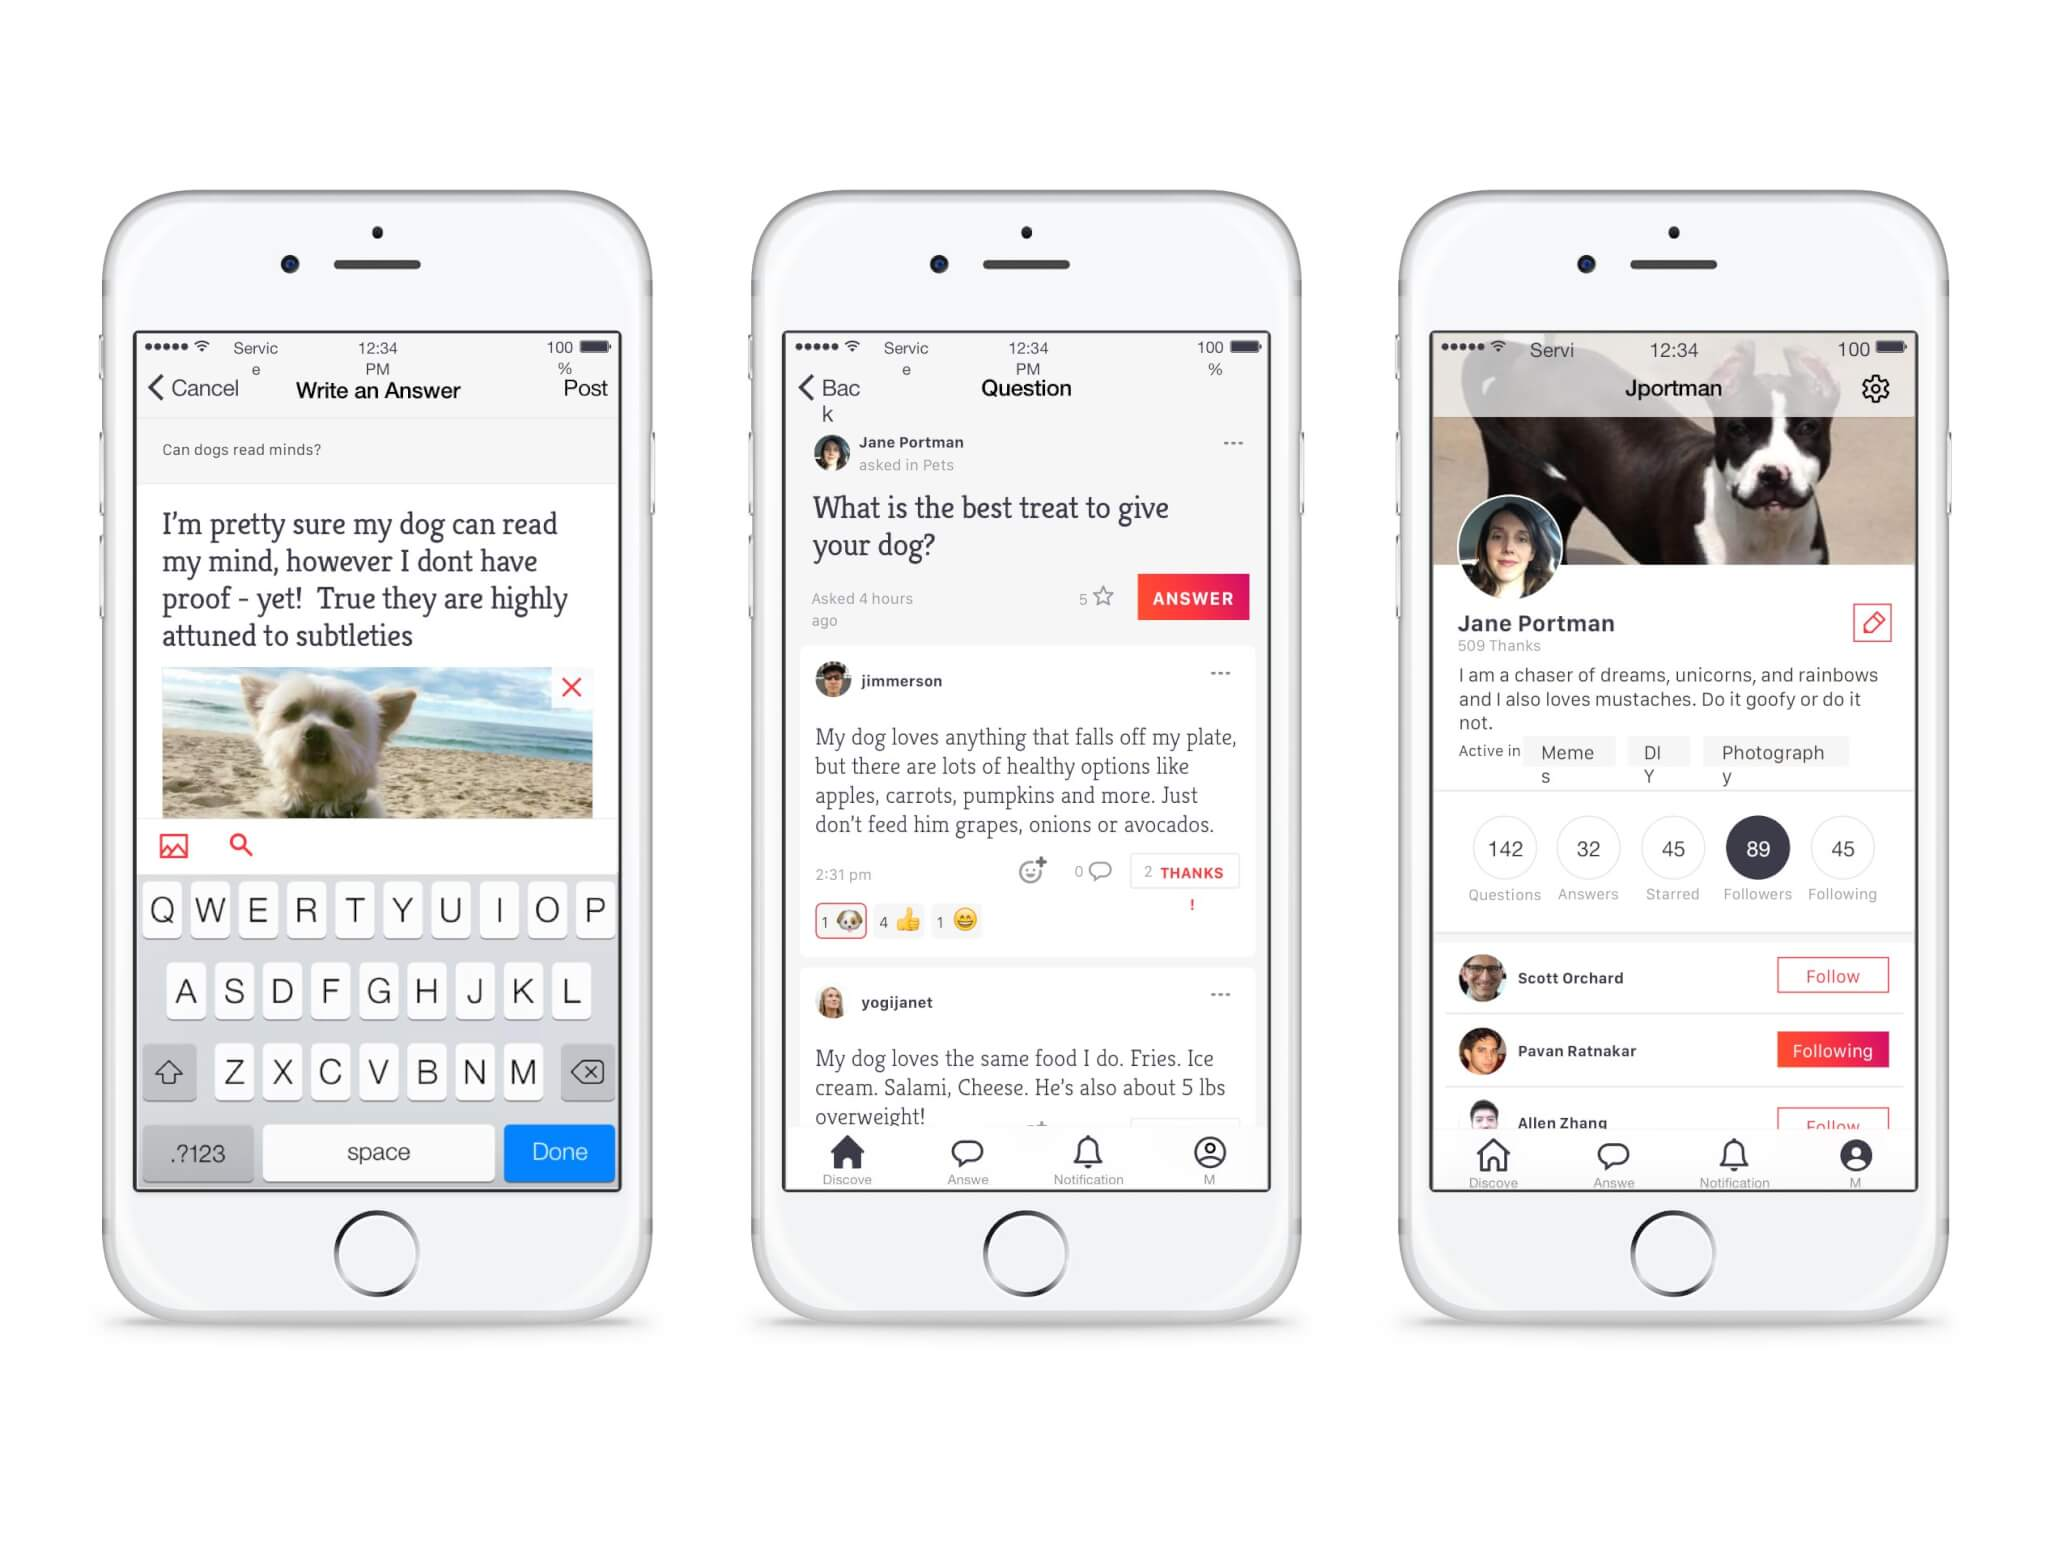 Yahoo officially launches its Yahoo Answers Q&A mobile app